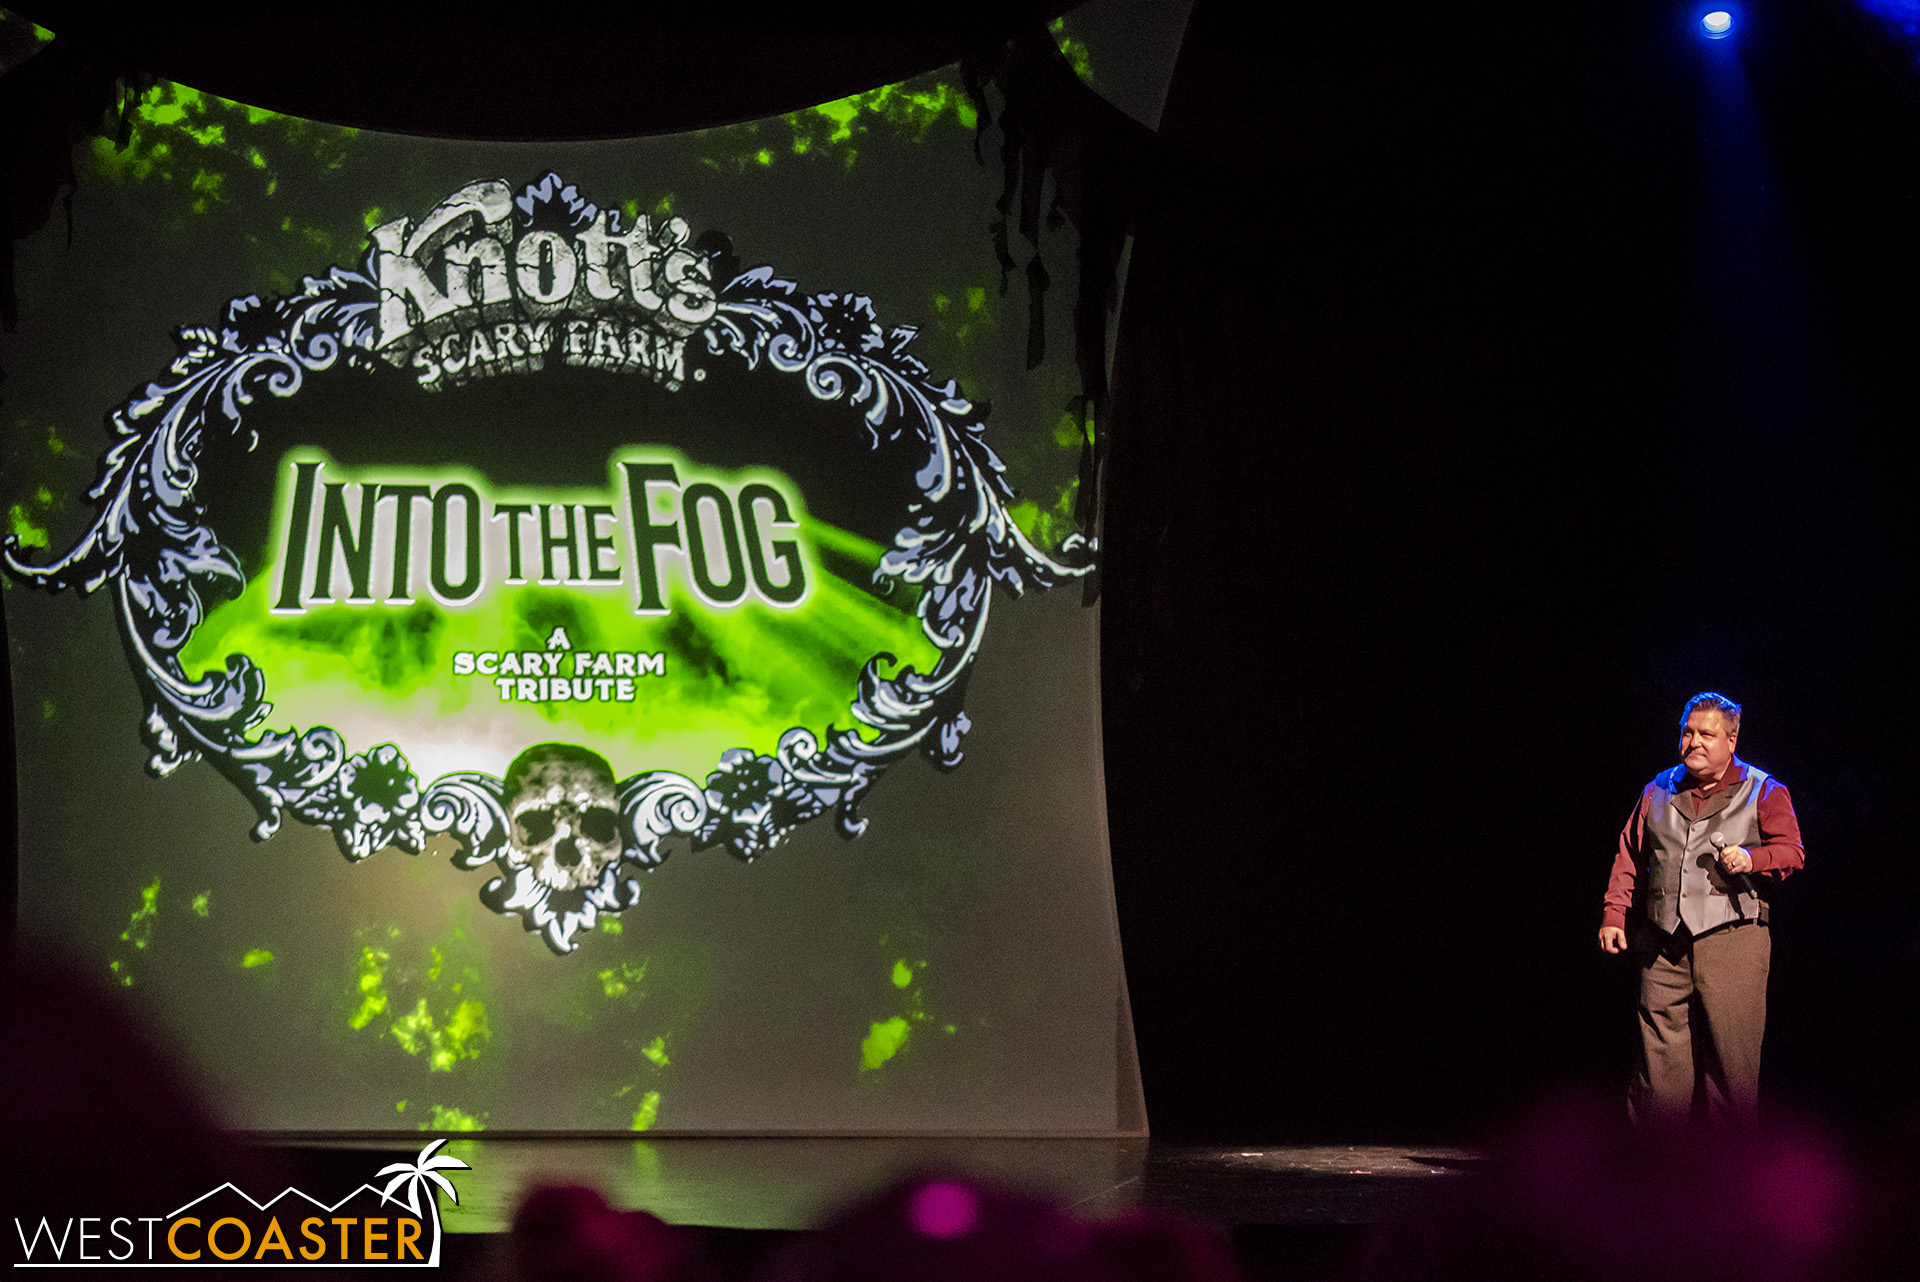 Into the Fog: A Scary Farm Tribute is back for a second year.